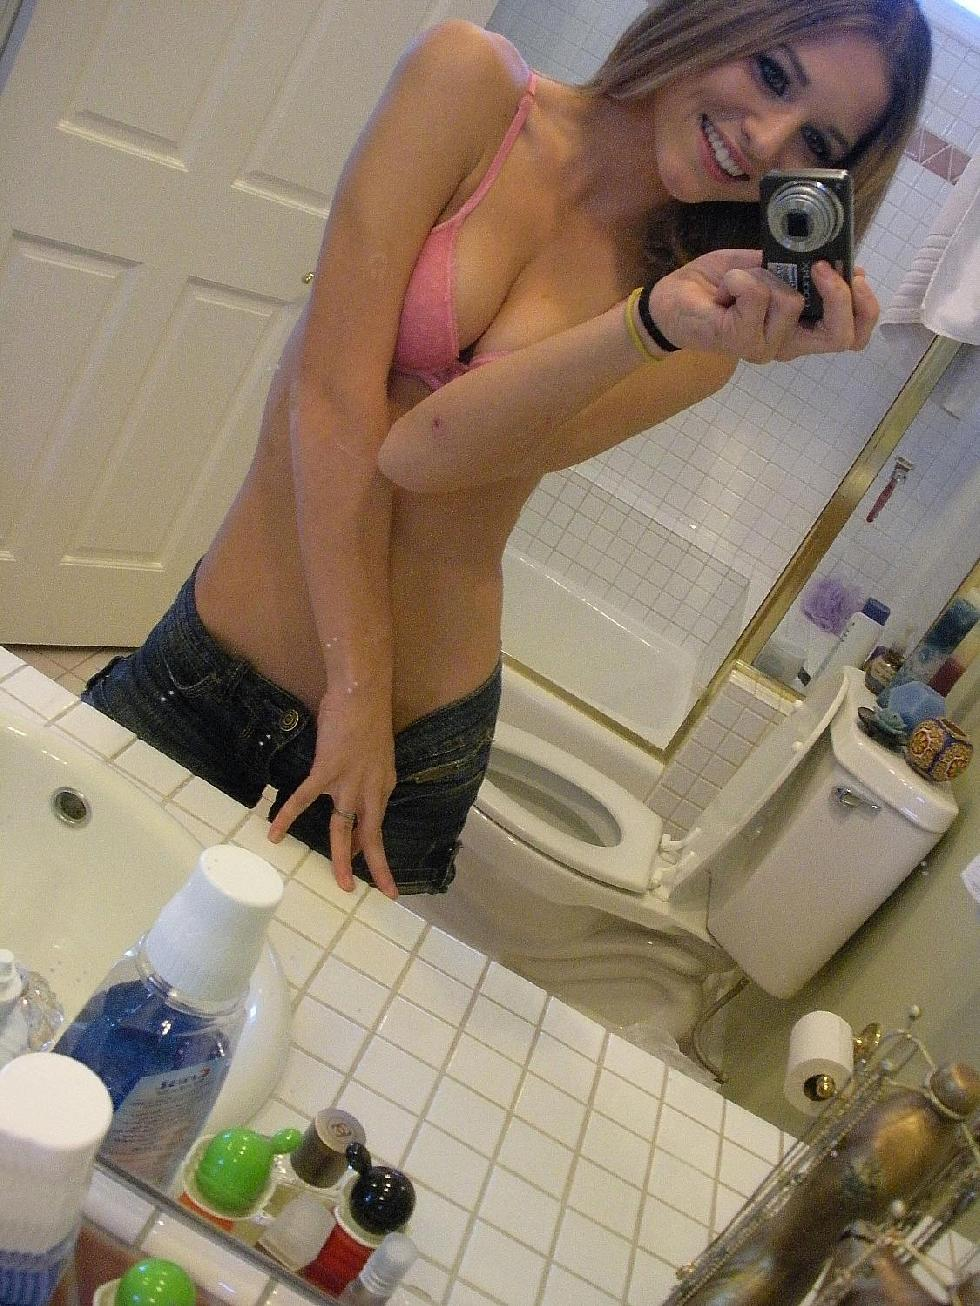 Magnificent amateur in the bathroom - 9